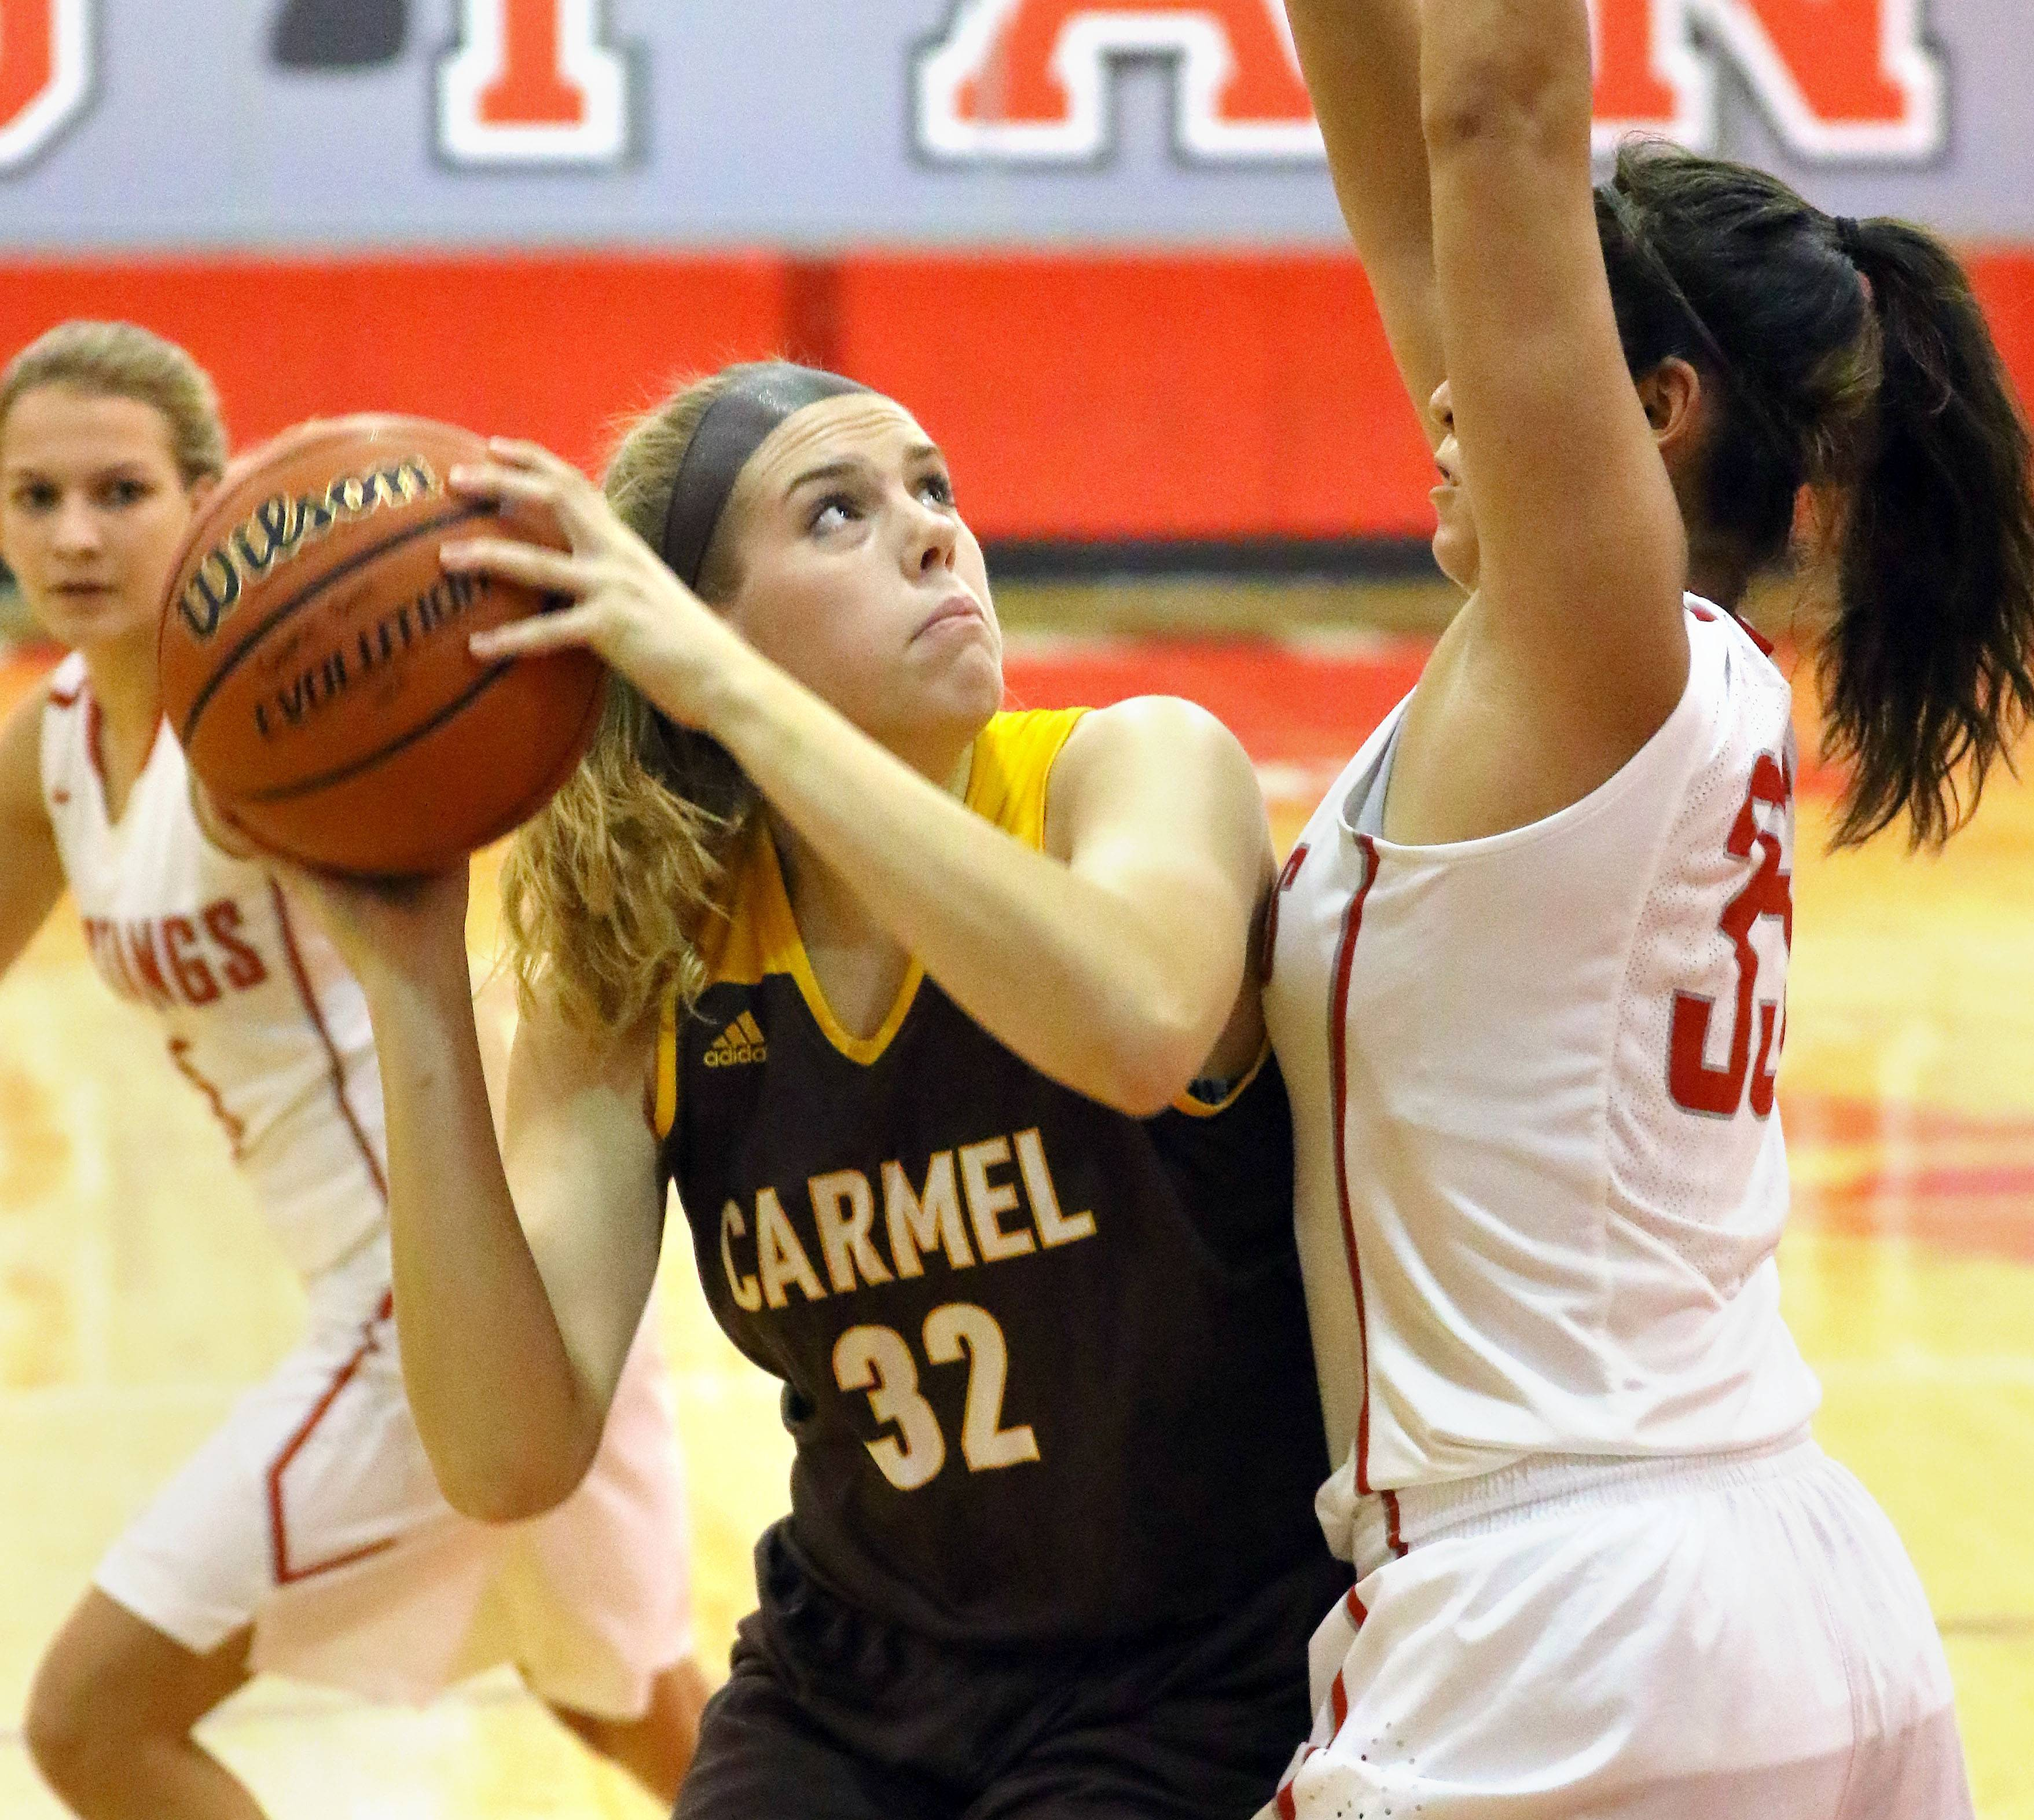 Carmel's Maddie Motzel, left, looks to shoot with Mundelein's Ellie Maldanado defending on Tuesday at Mundelein.